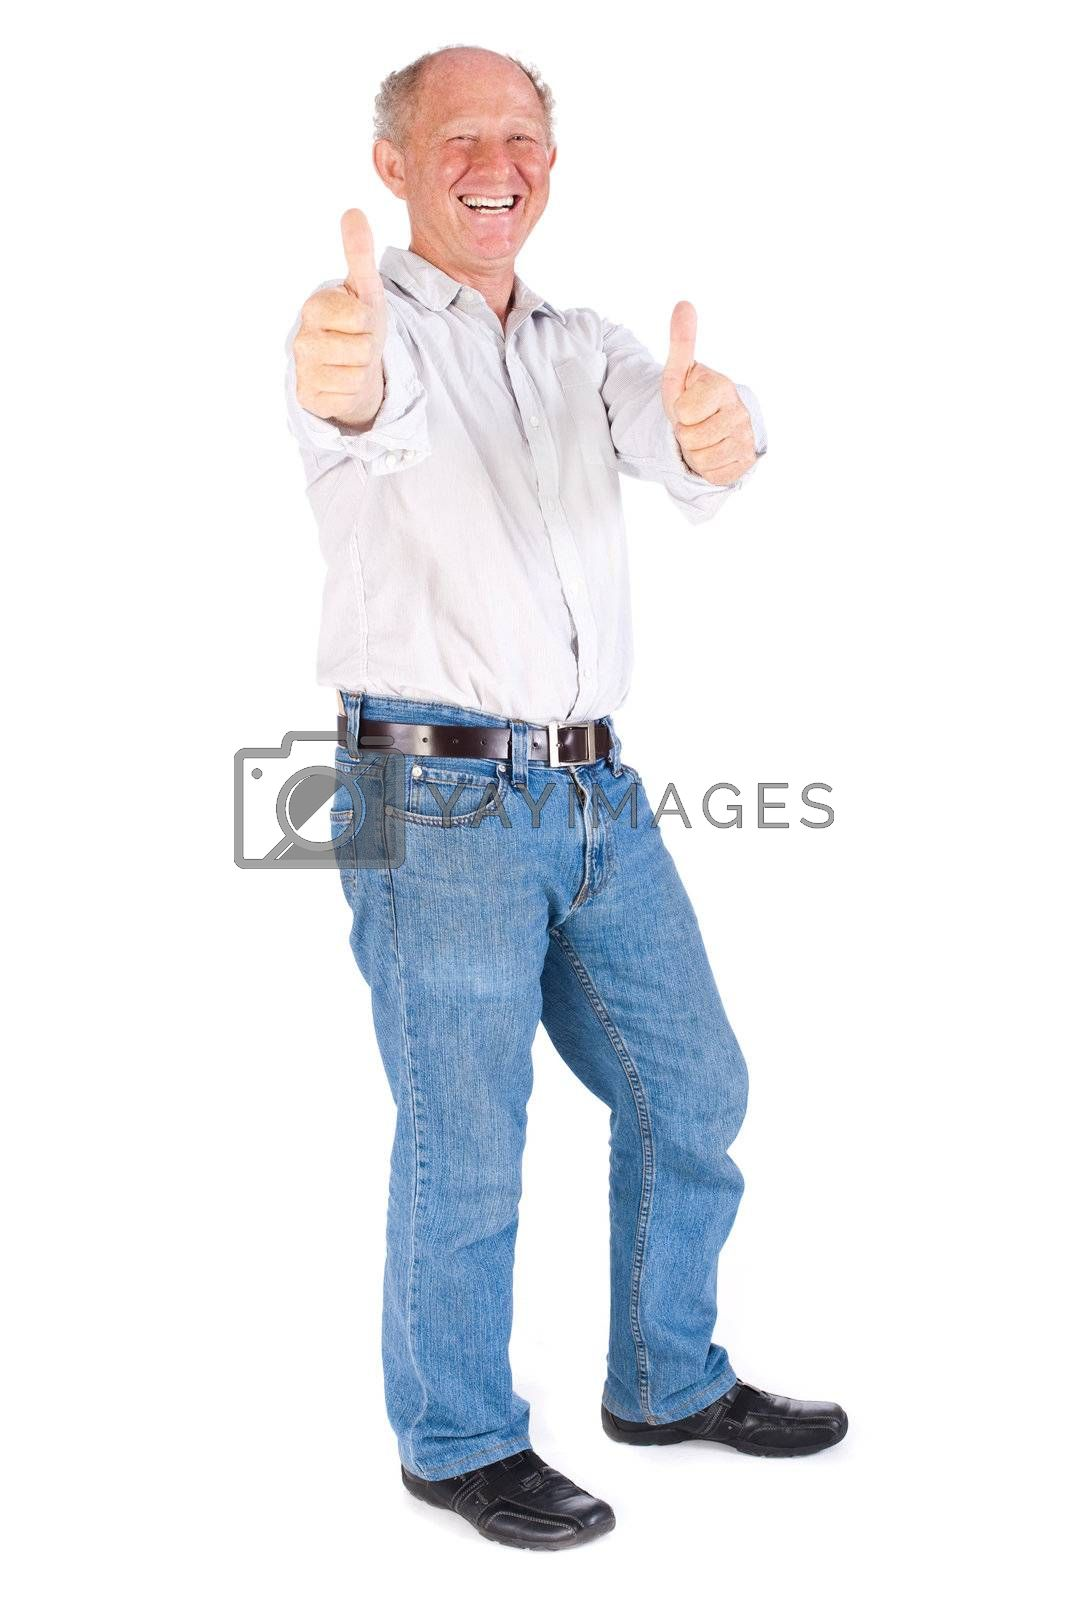 Old man showing thumbs up isolated on white background.